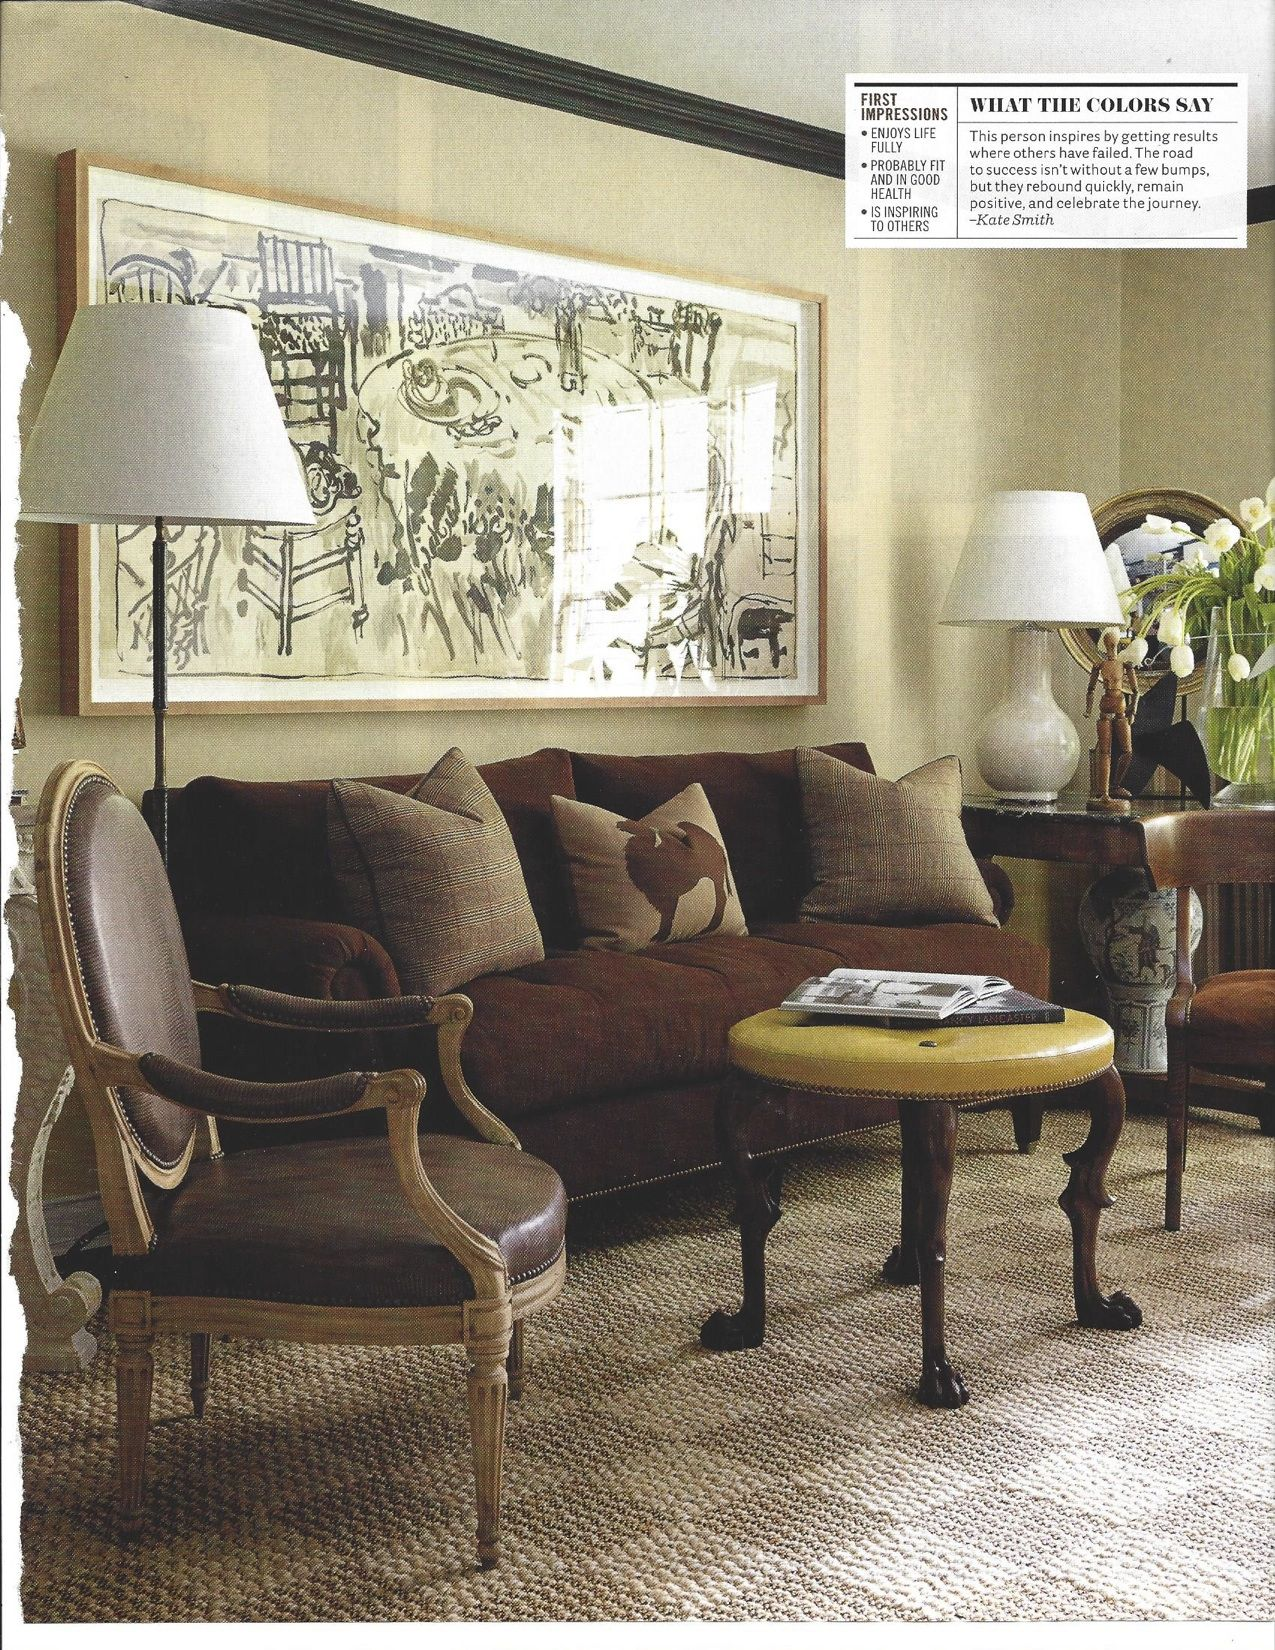 What colors say in a living room | Elle decor living room ...